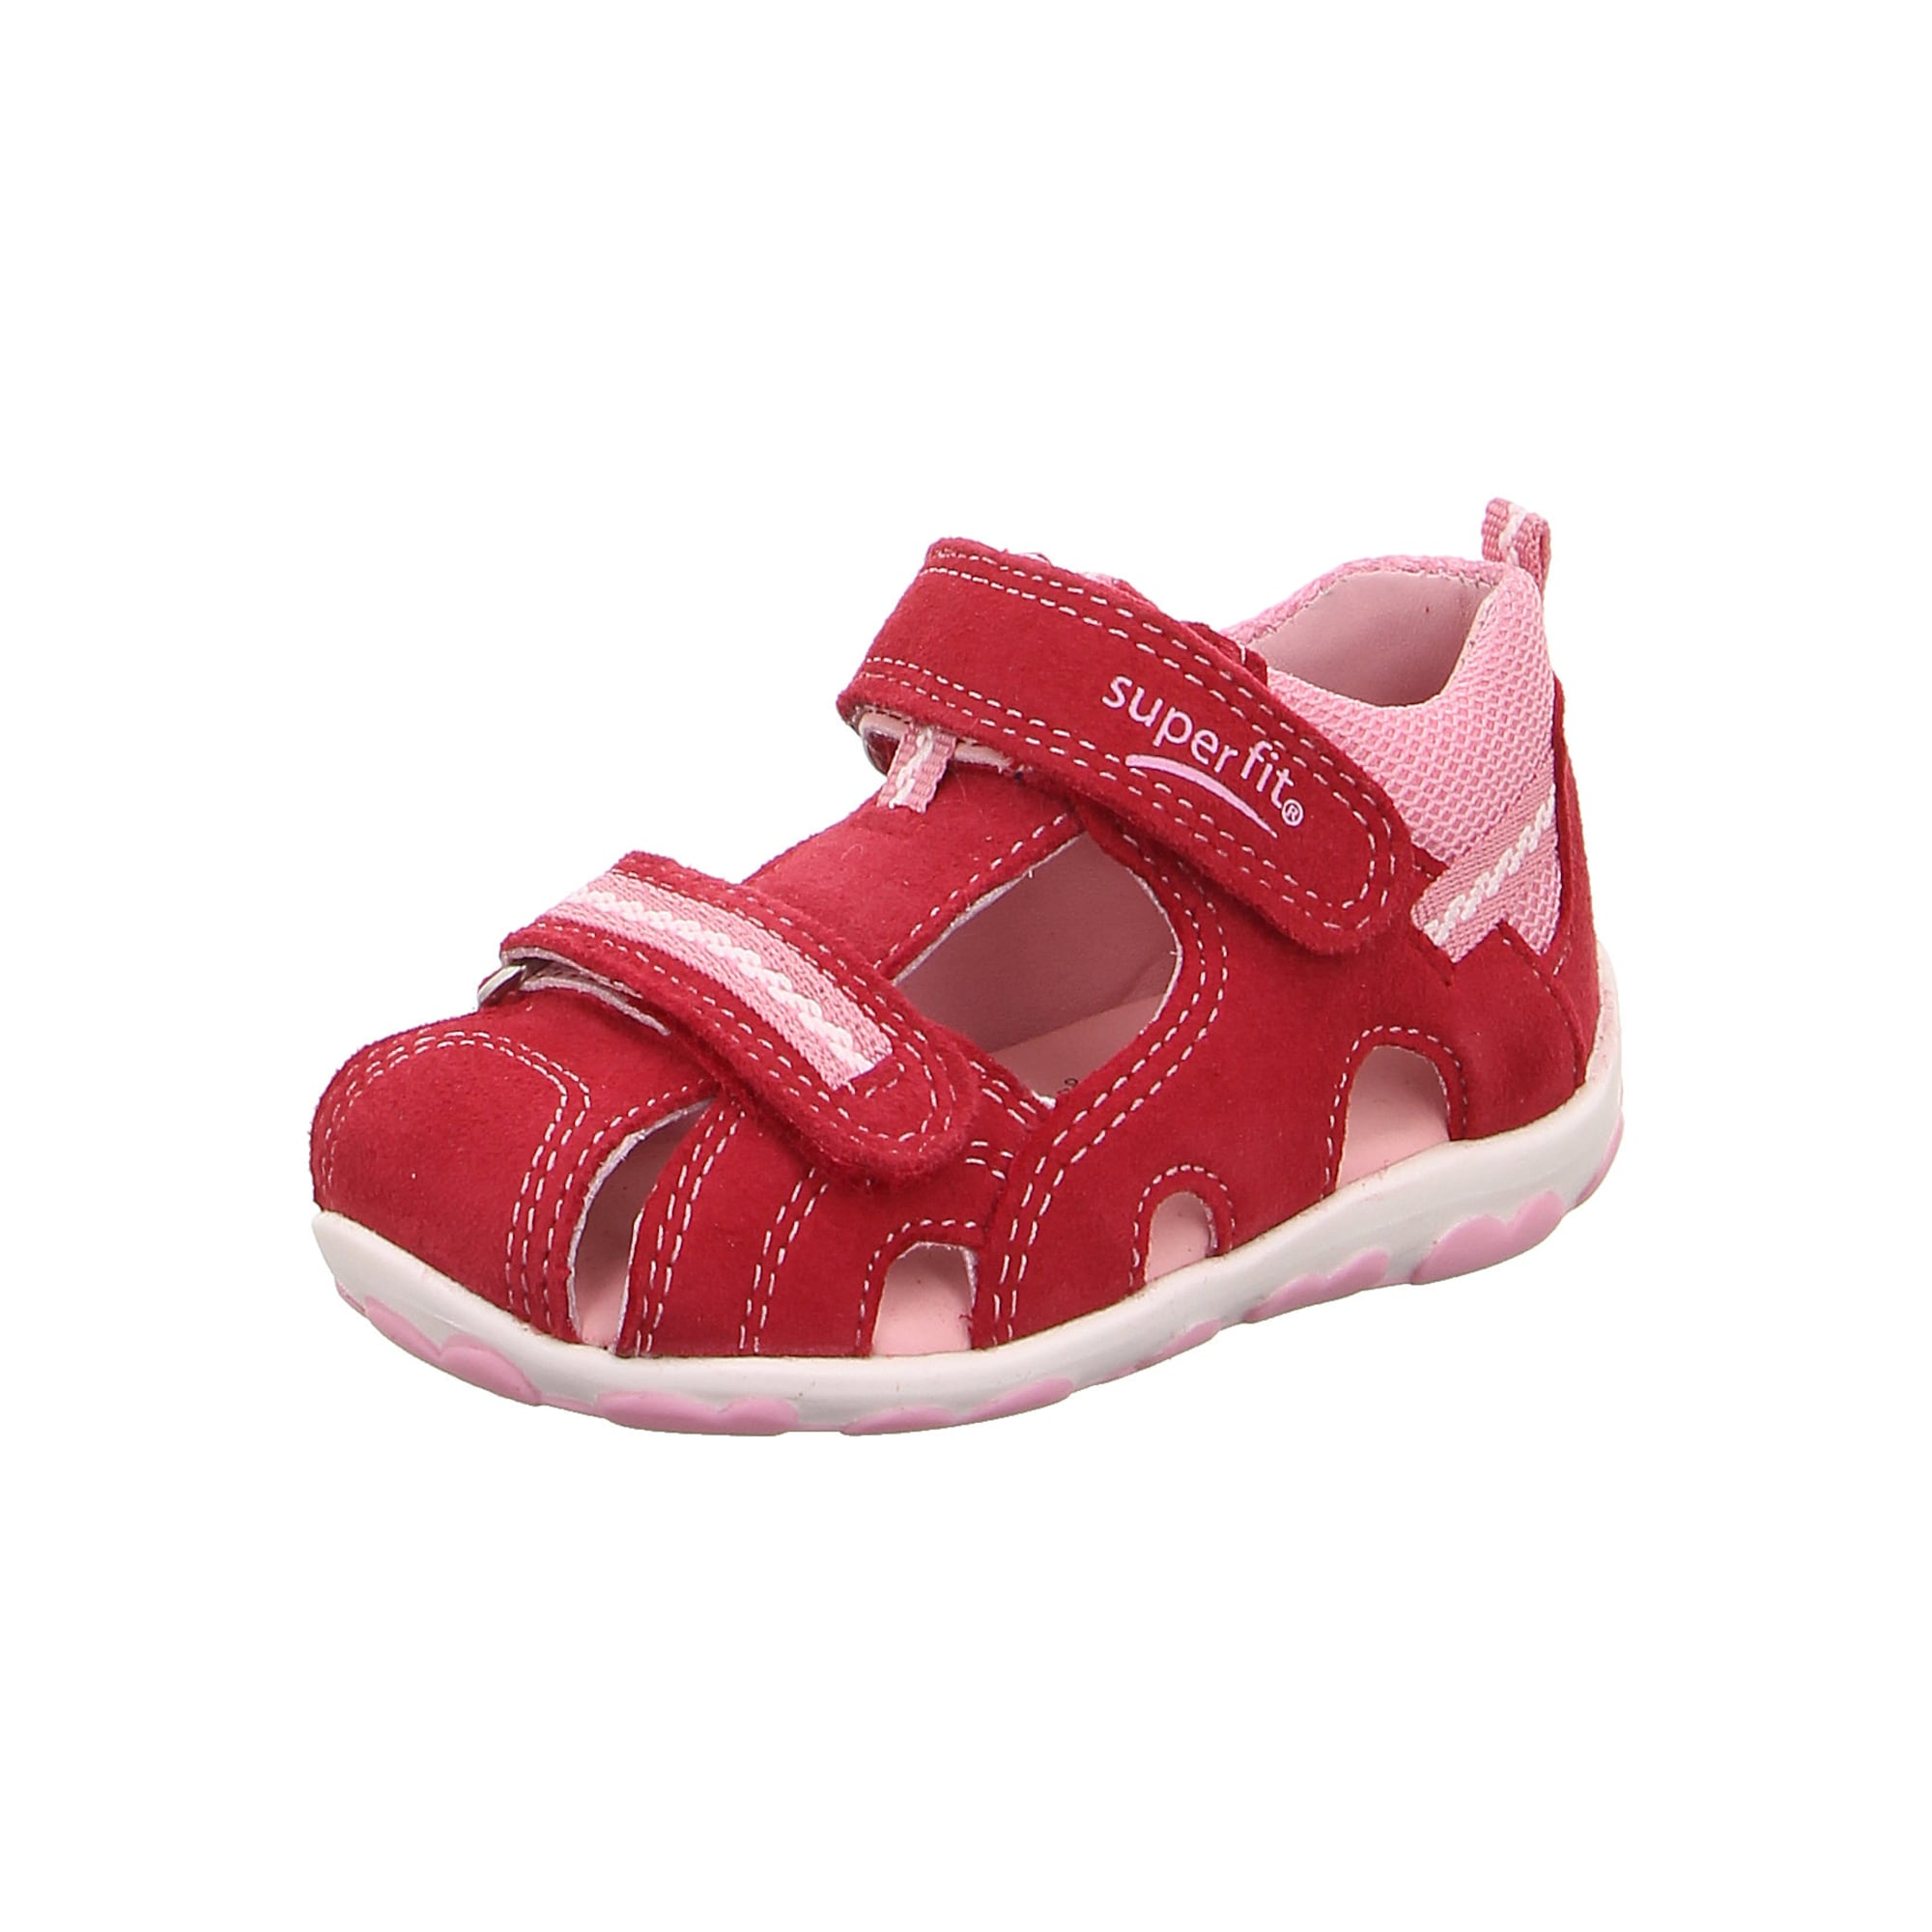 cheap for discount 8f5c7 a686d AboutYou | SALE Kinder,Mädchen SUPERFIT SUPERFIT Schuhe ...